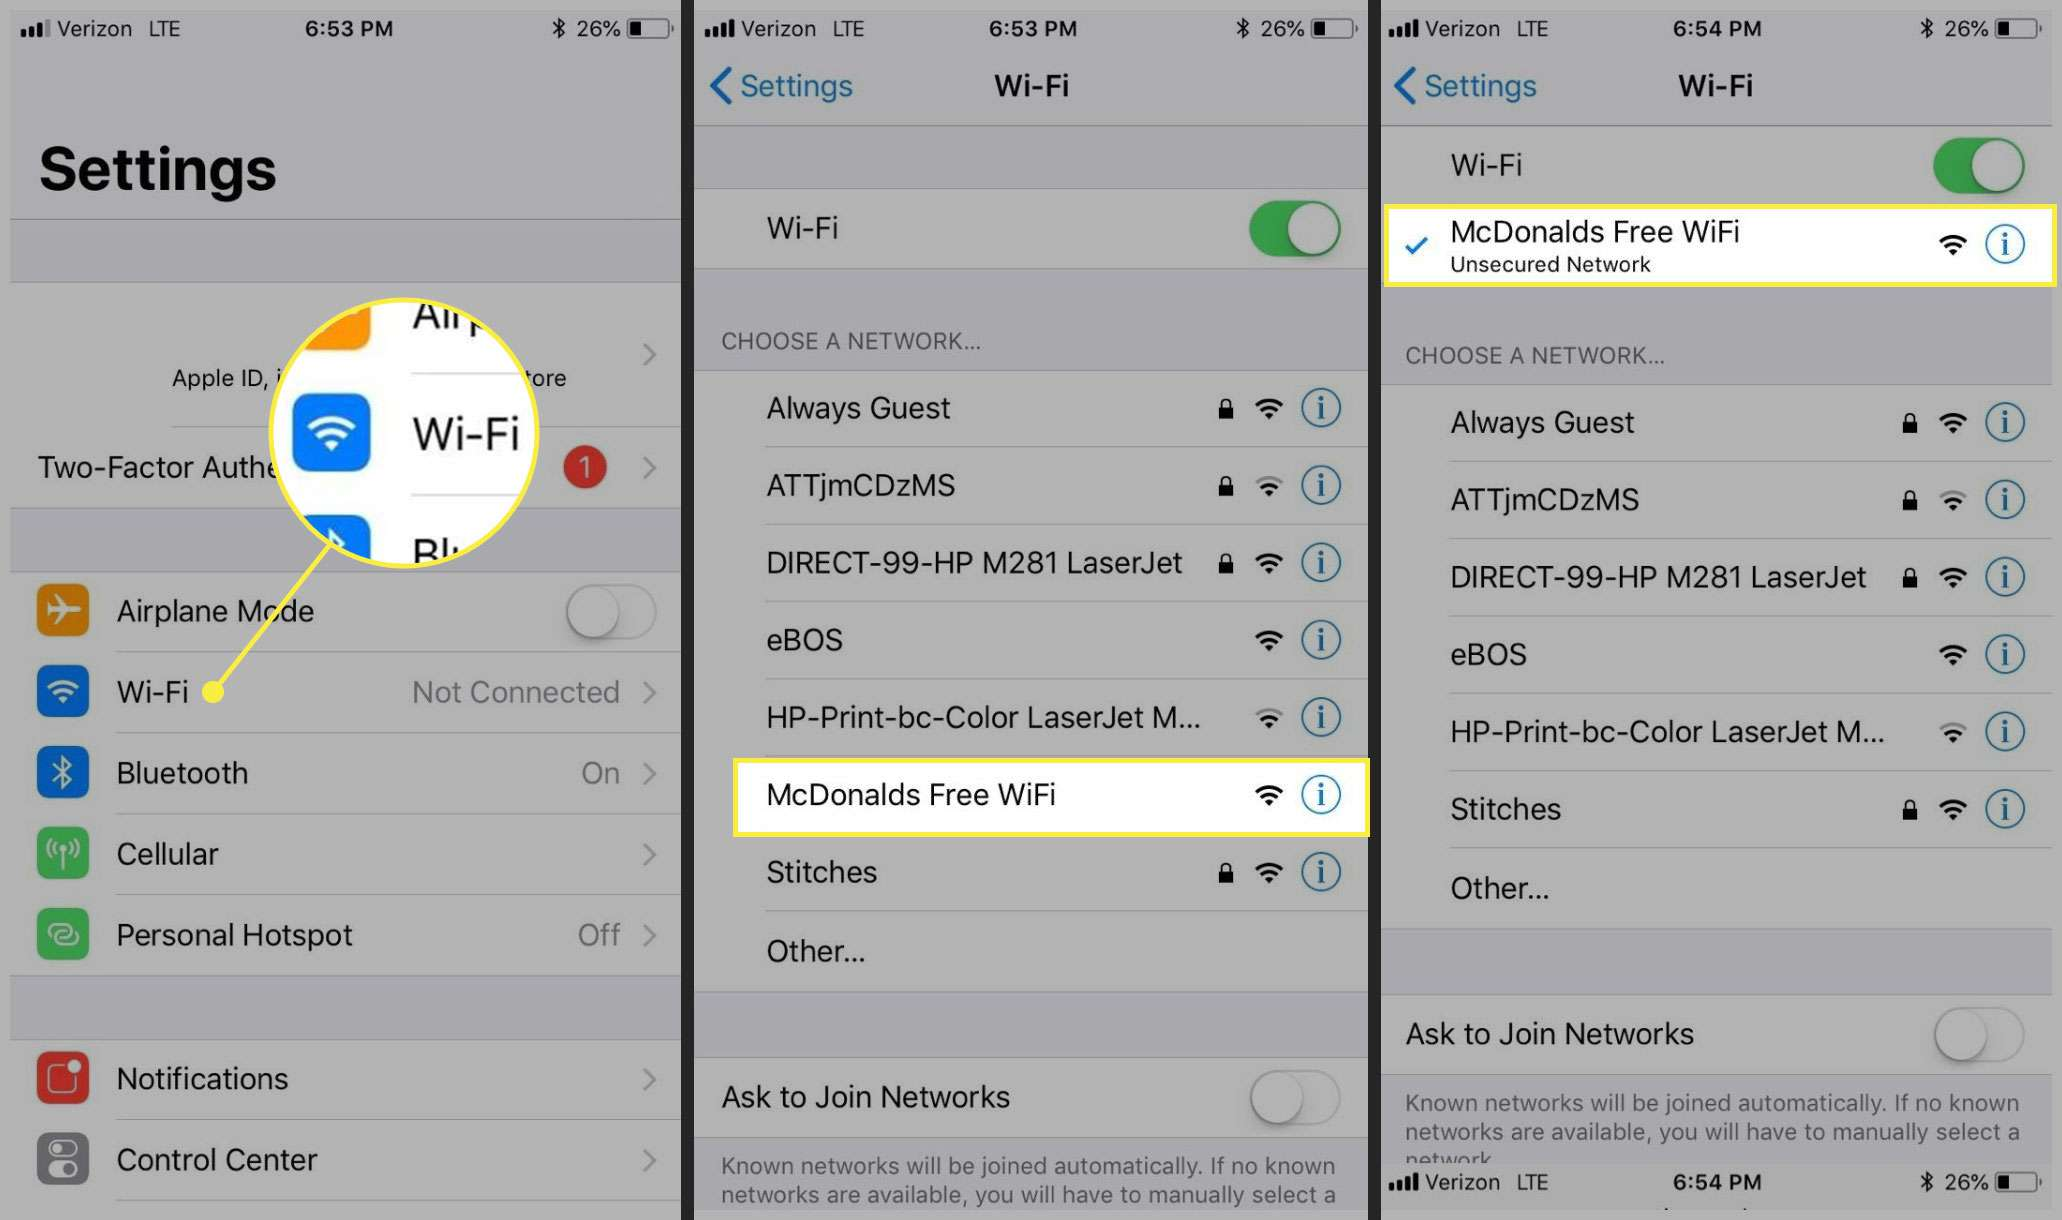 Connecting to McDonald's Free Wi-Fi in iOS